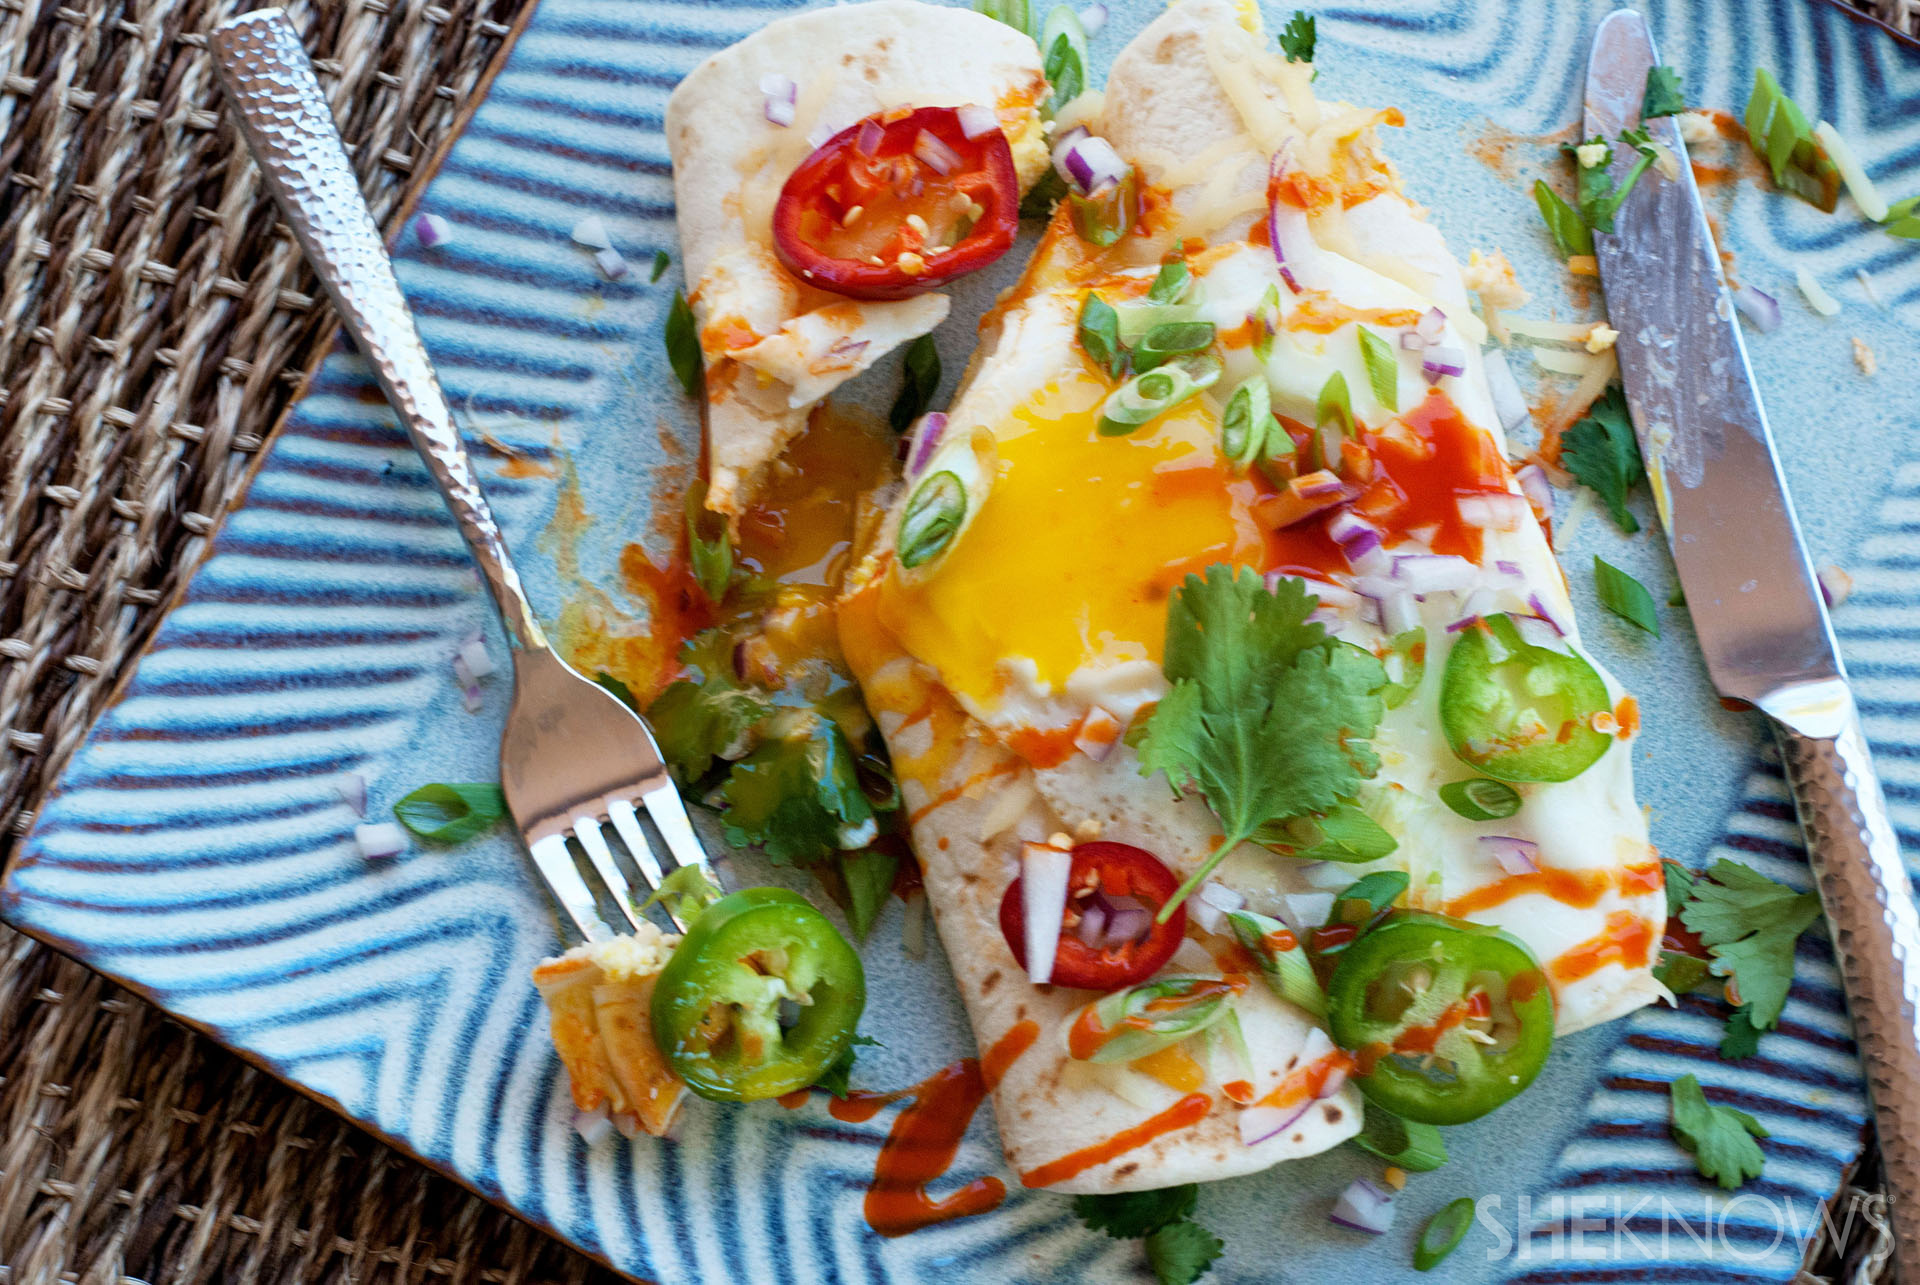 Morning enchiladas with an egg on top